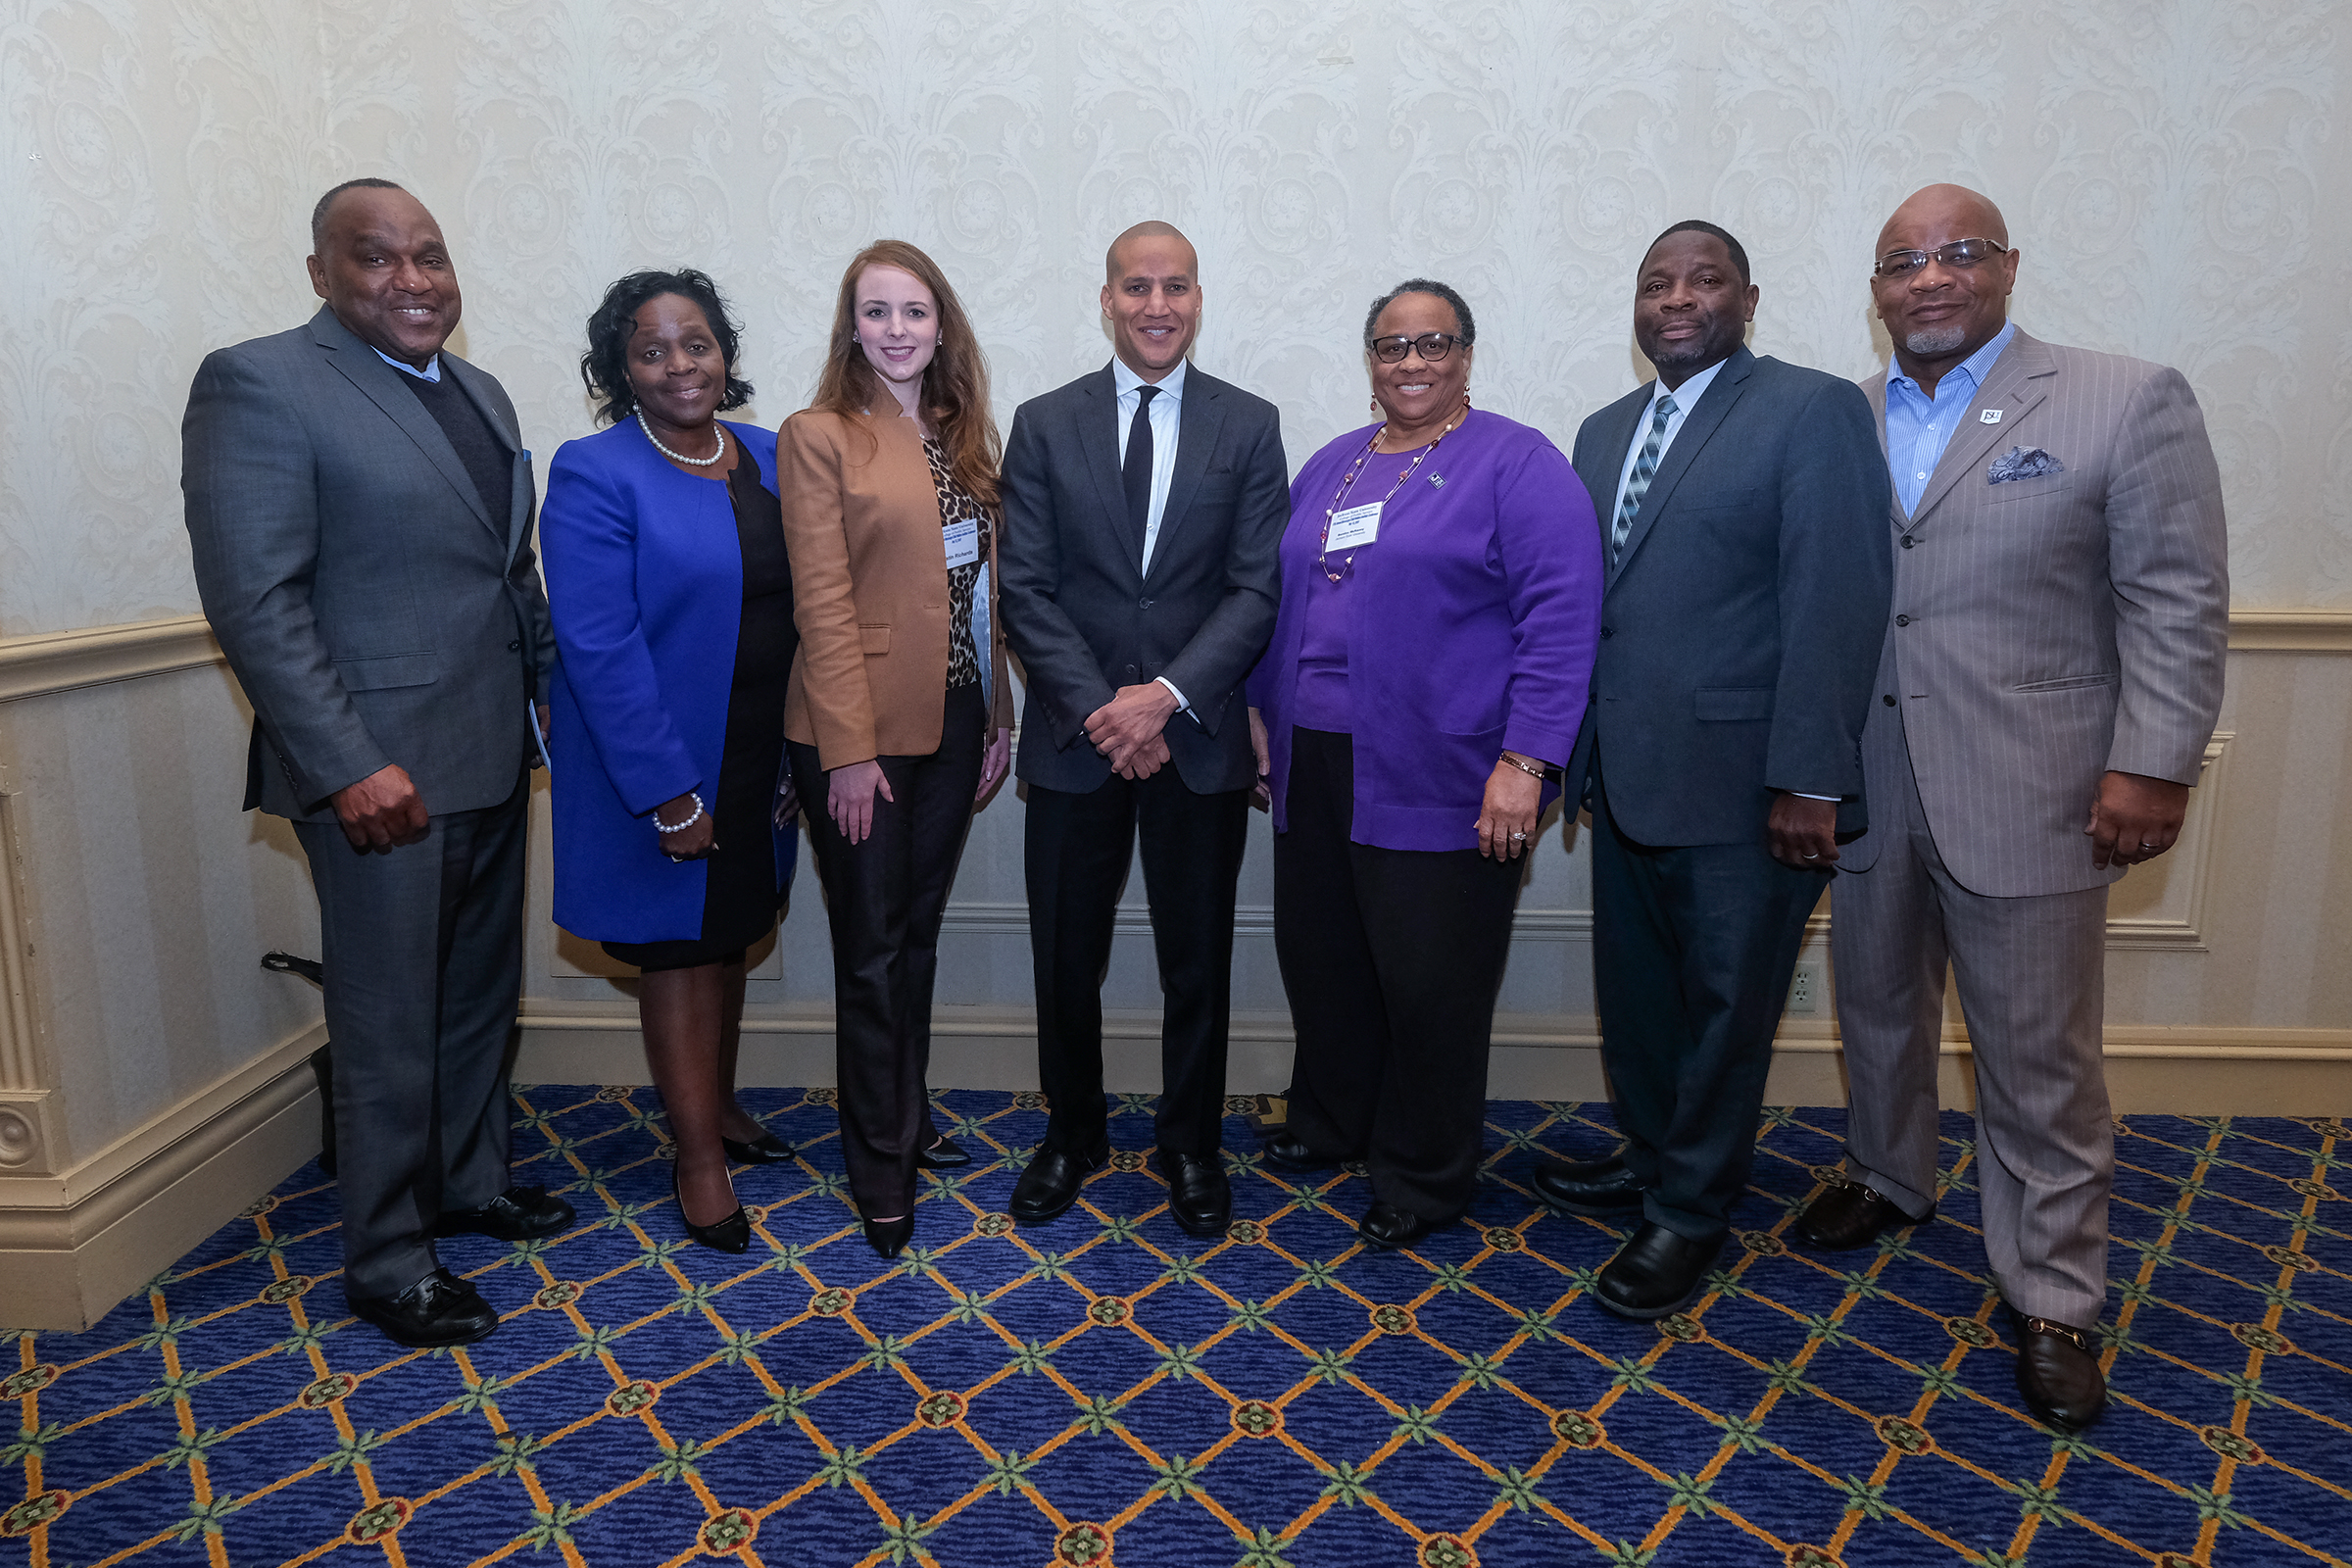 Pictured from left to right: Dr. Roosevelt Shelton, dean for College of Public Service; Dr. Lynda Brown-Wright, provost and vice president for Academic Affairs; Dr. Kristin Richards, associate professor for the School of Social Work; Dr. Timothy Quinn, keynote speaker for MCWIC; Professor Bernice McKenny, instructor for the School of Social Work; Honorable Johnny McDaniels, judge for Hinds County; and Dr. William B. Bynum, Jr., President of Jackson State University.